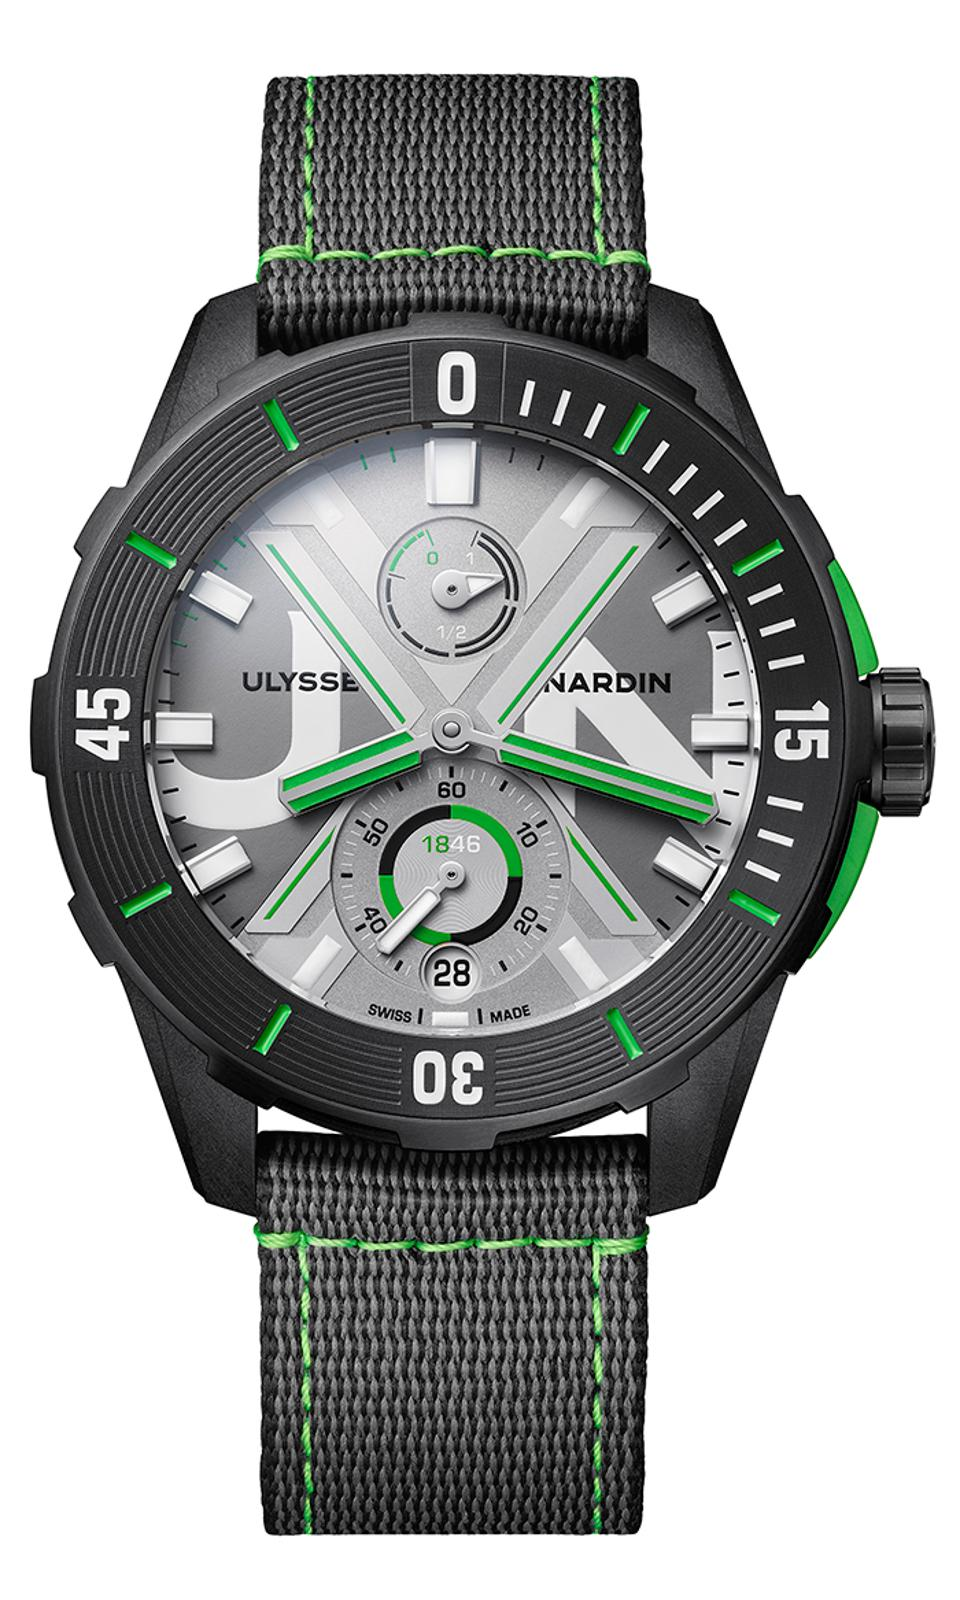 The Ulysse Nardin Diver Net Concept watch is made of recycled plastic made from abandoned fishing nets.